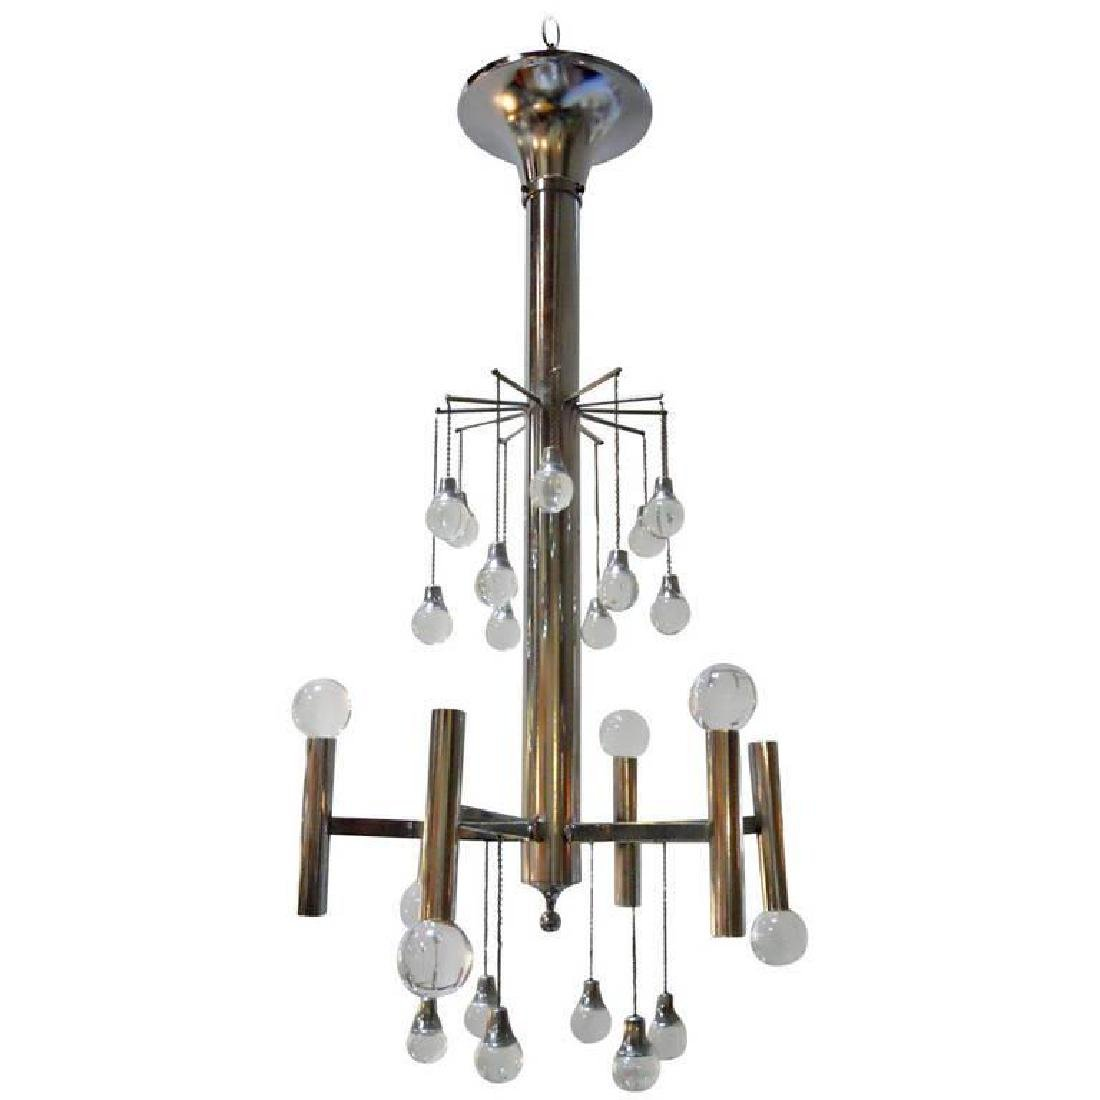 Chrome and Glass Balls Pendant by Sciolari